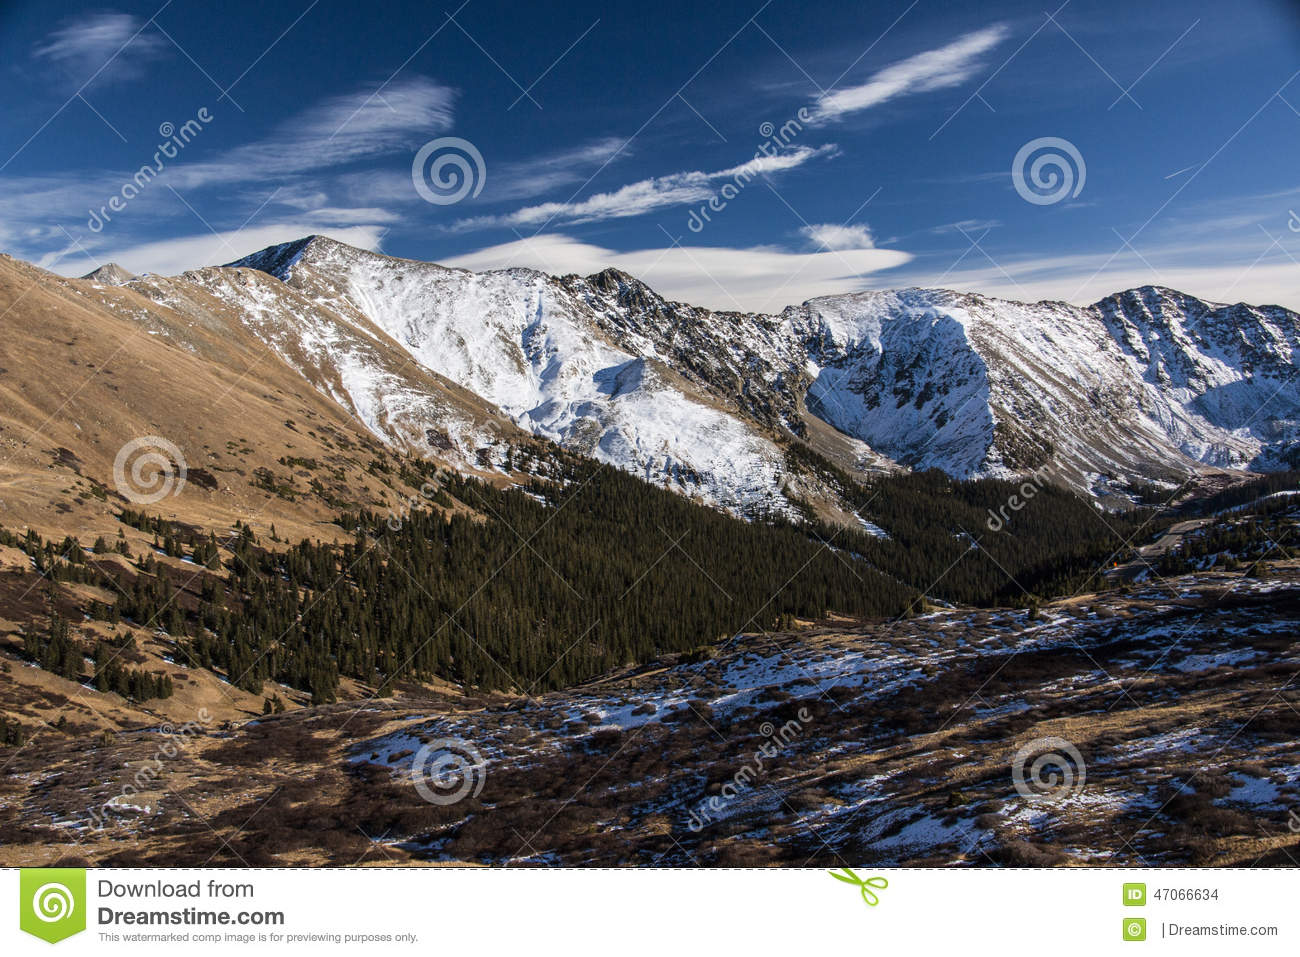 Loveland Pass in Colorado the Mountains